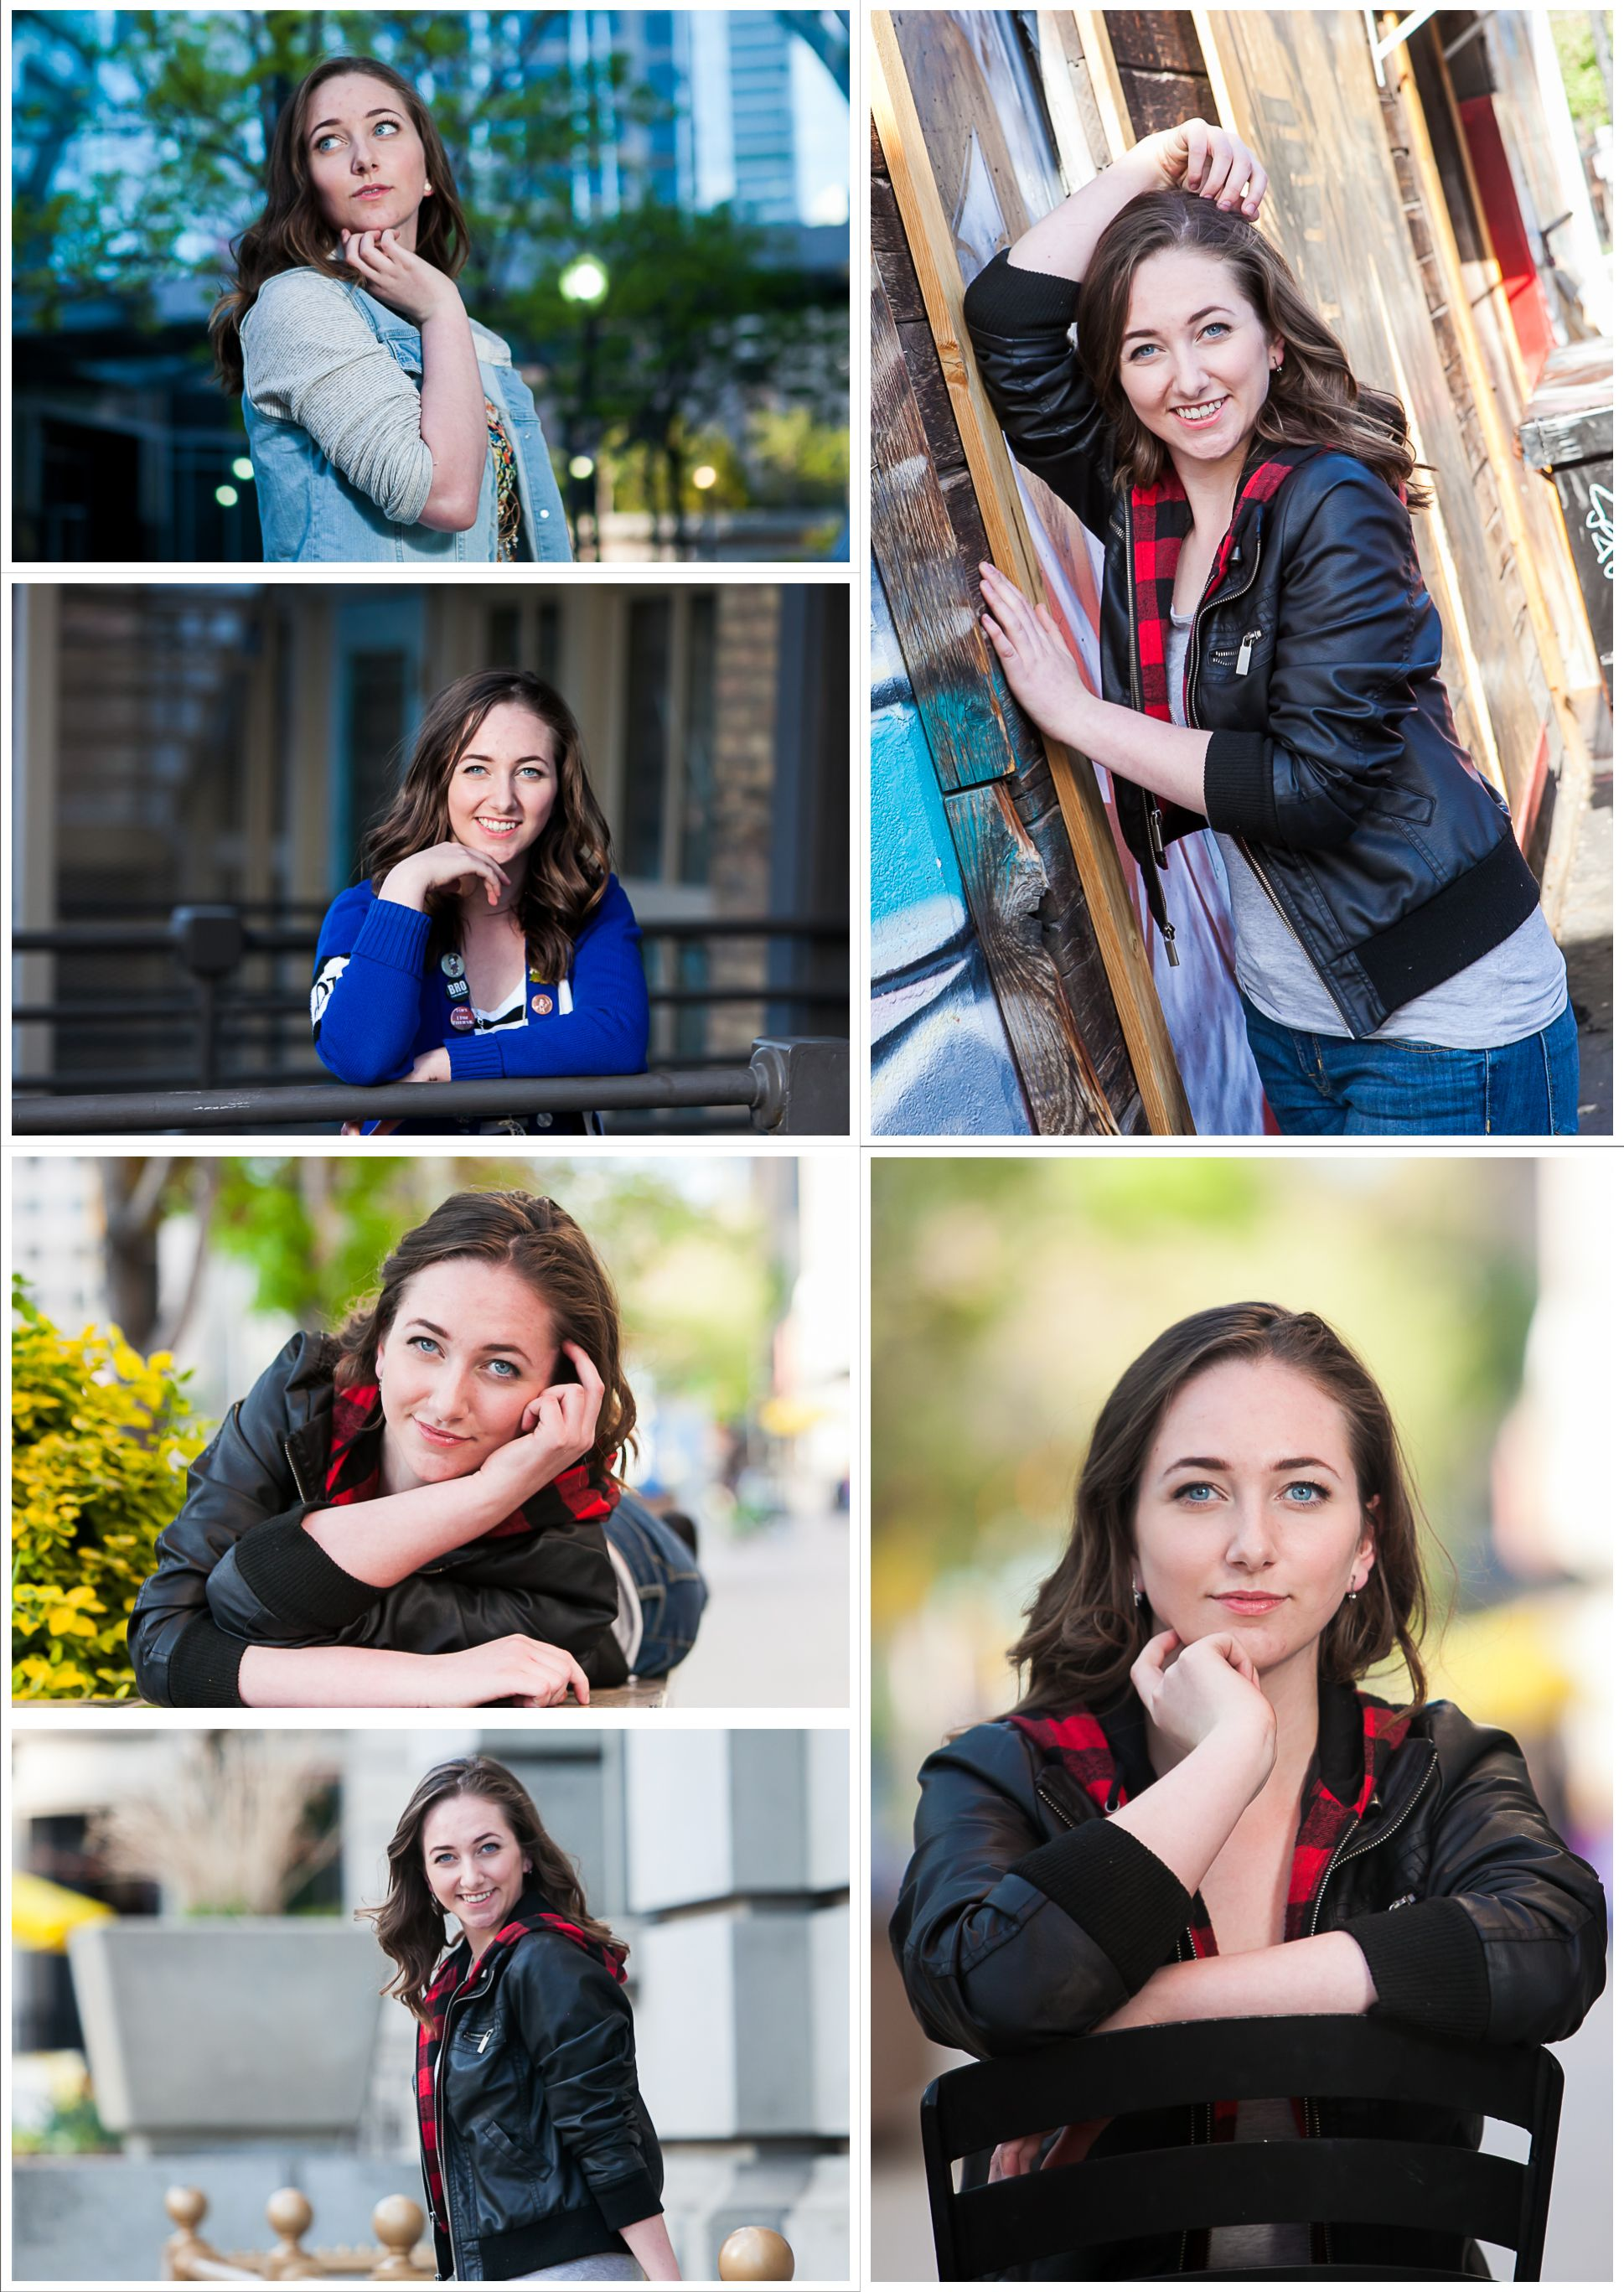 senior portraits orchard provo amphitheater utah state hospital high school senior girl downtown salt lake city urban holly s hobby s photography